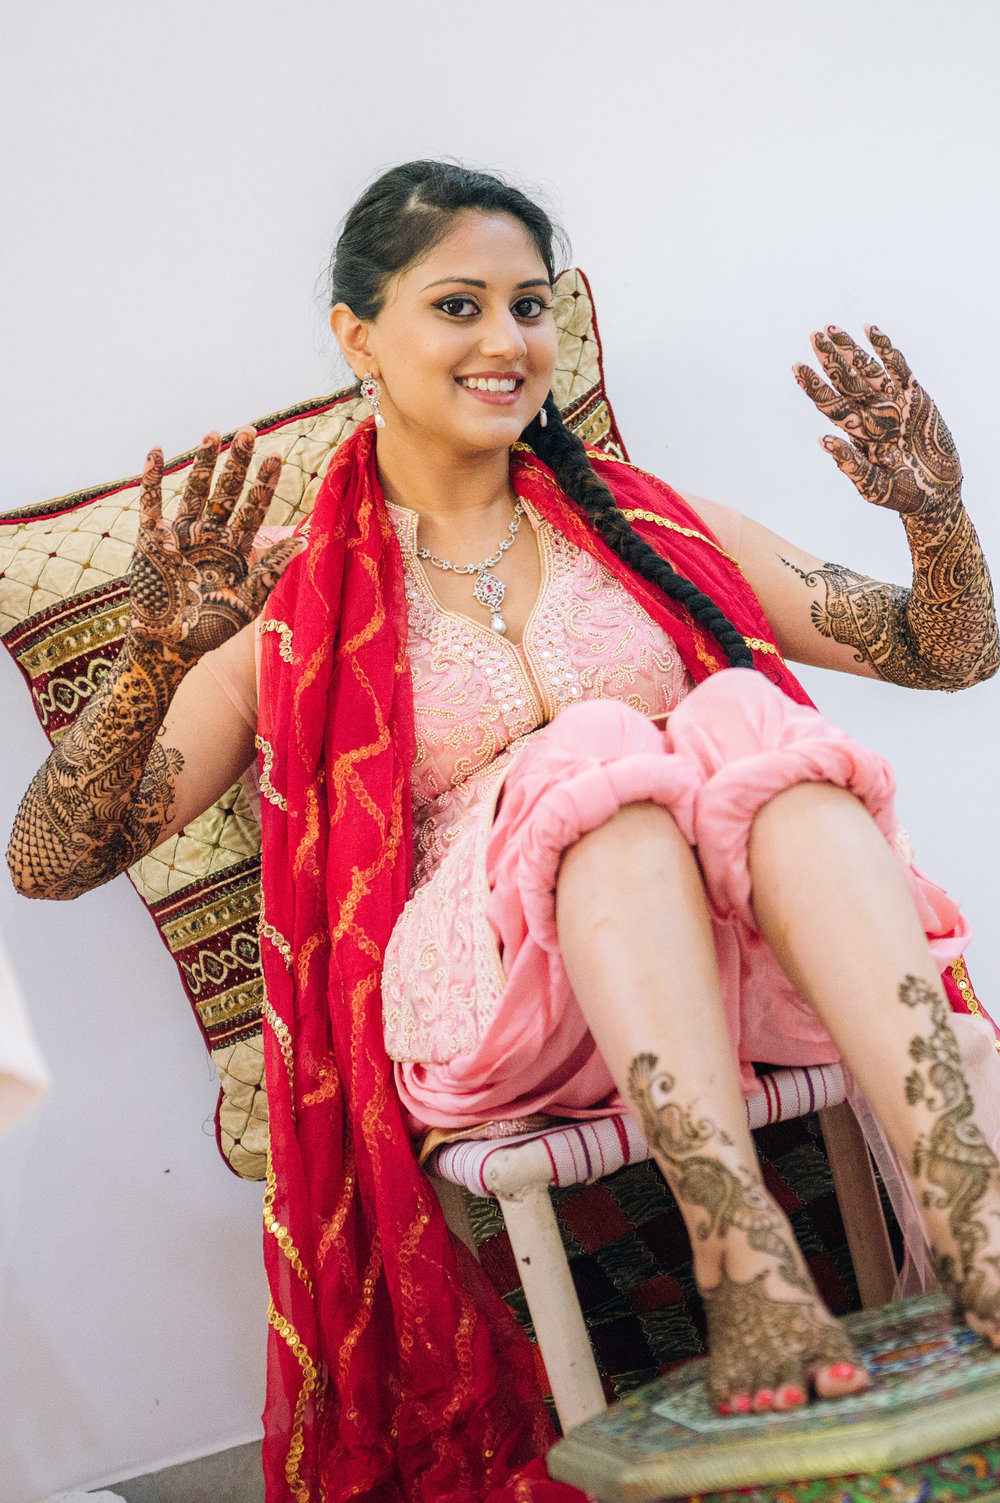 Check out those striking designs! Did you know that in order not to smudge the fresh henna, the bride-to-be must not move. She would need people to feed her water and even scratch her nose.